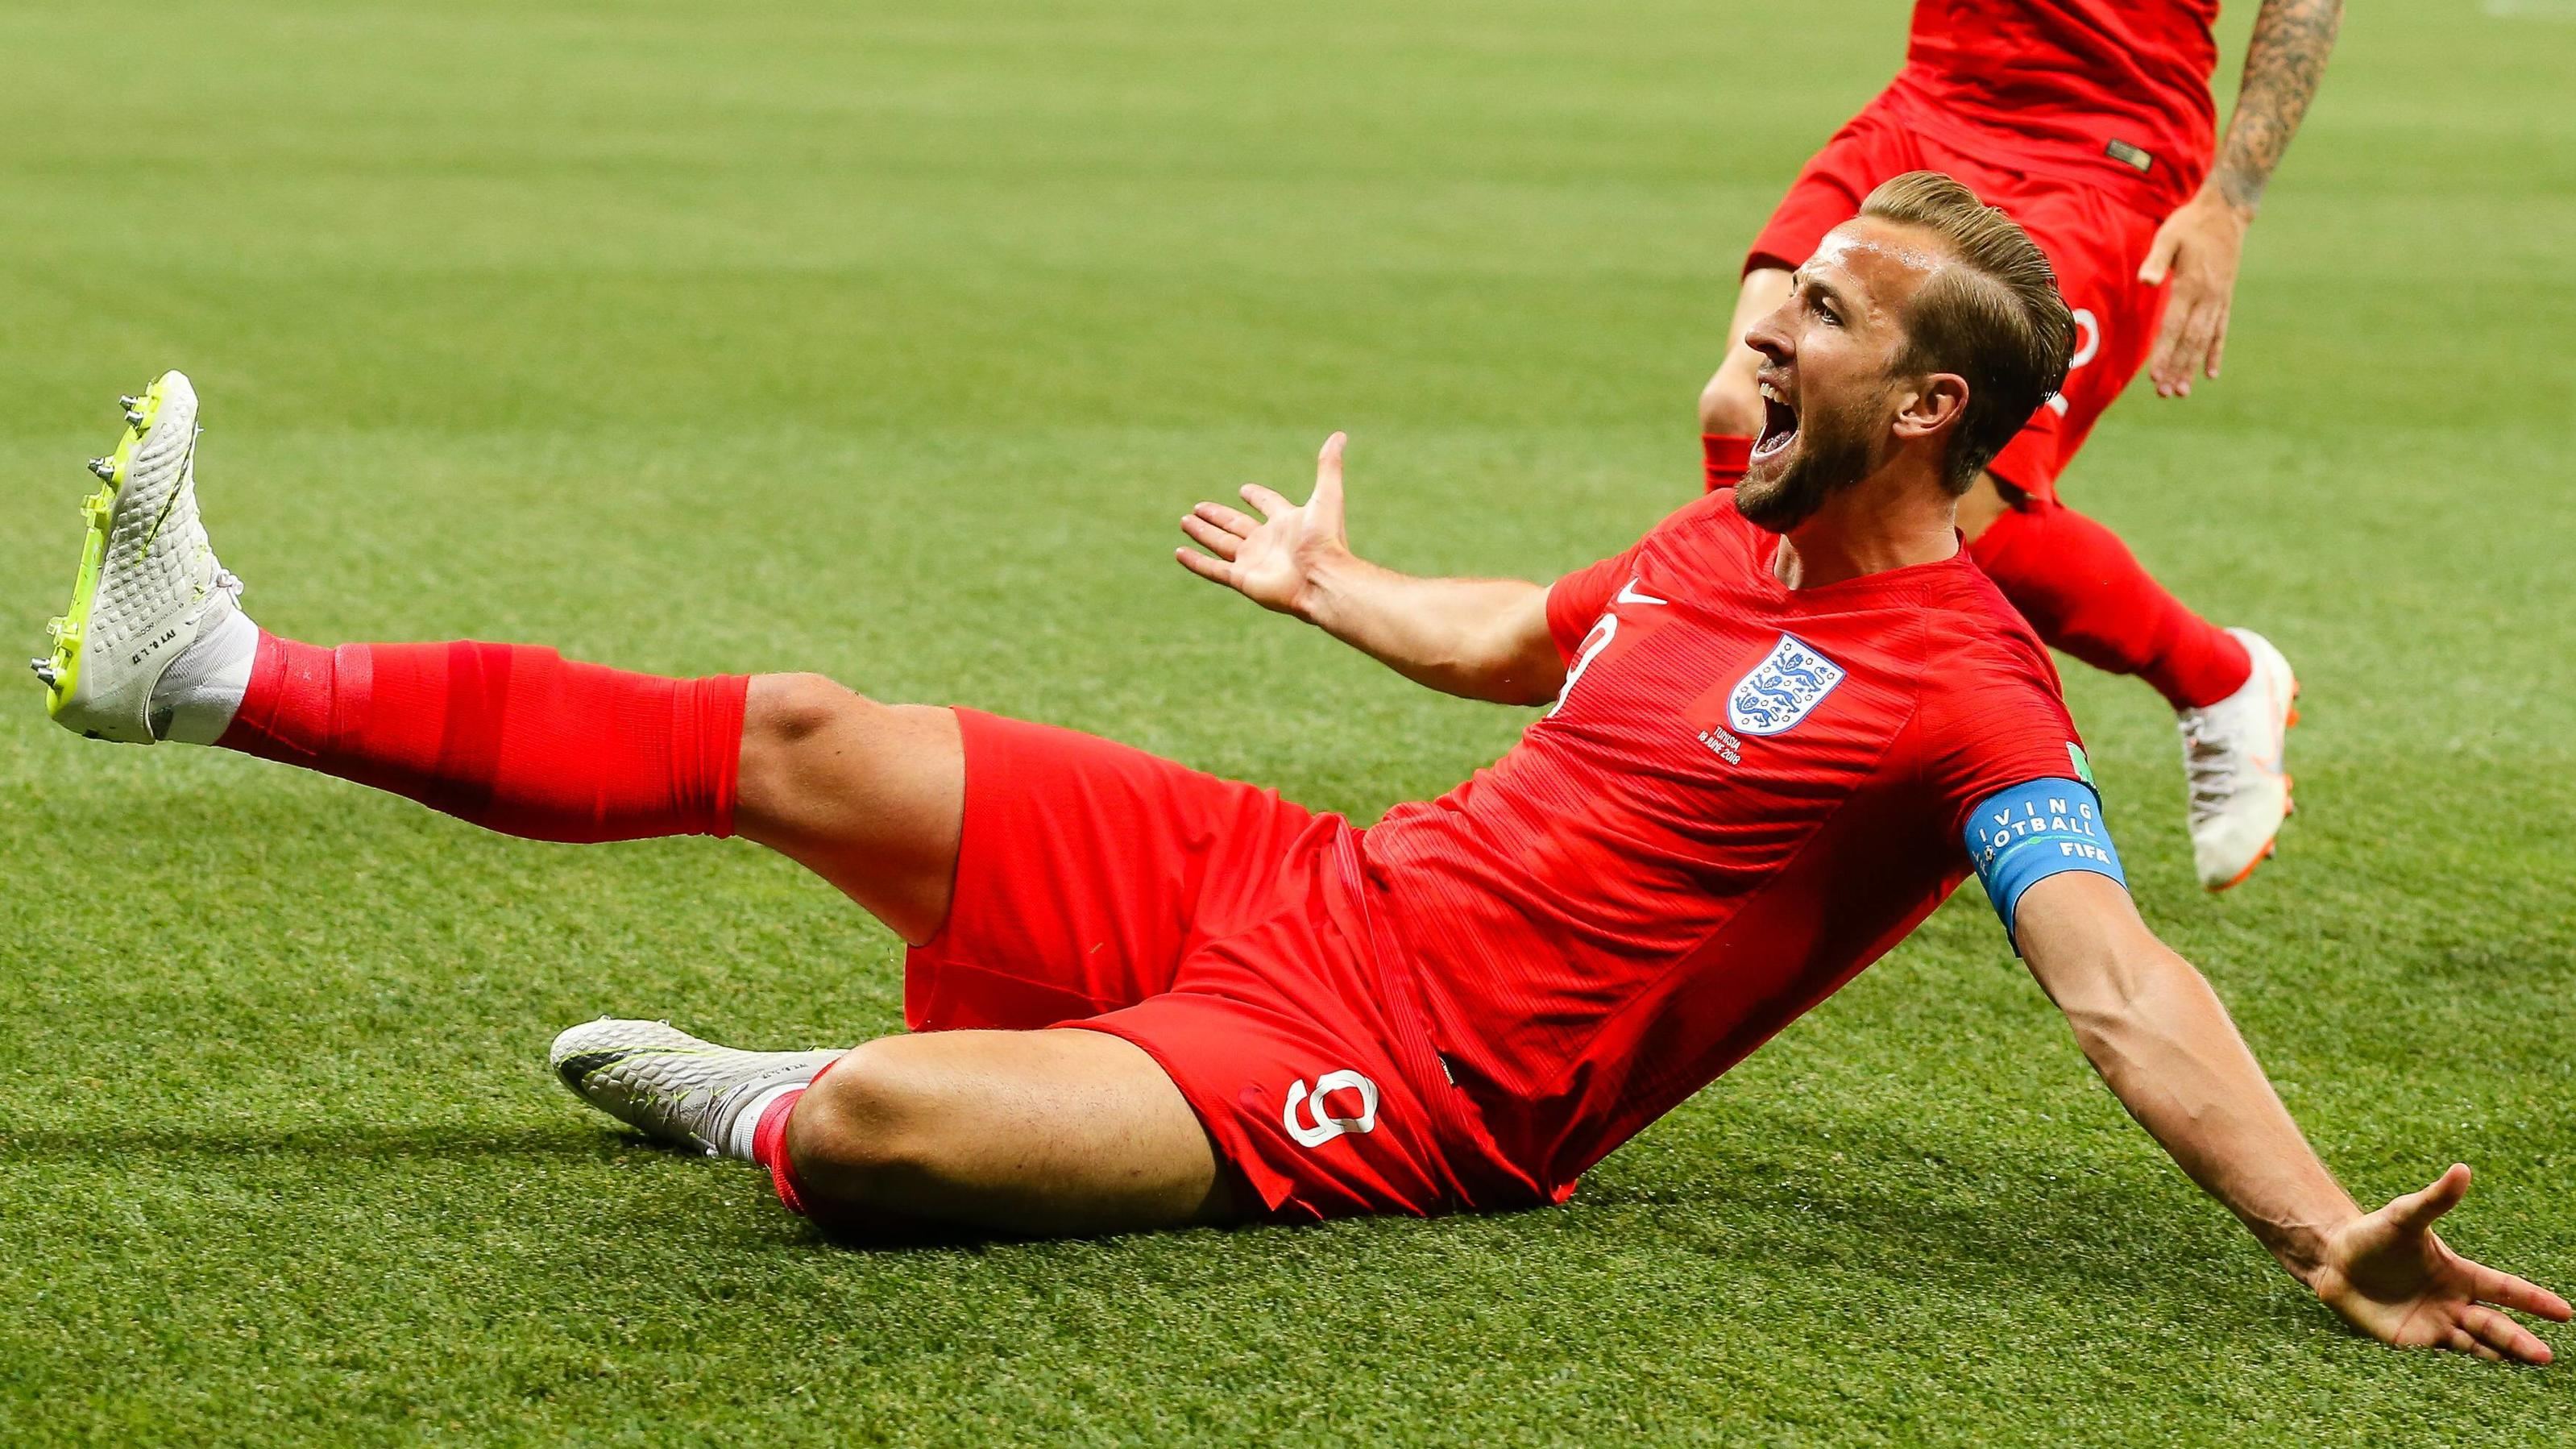 England v Tunisia 2018 FIFA World Cup WM Weltmeisterschaft Fussball Harry Kane of England celebrates scoring their first goal during the England v Tunisia 2018 FIFA World Cup match at Volgograd Arena, Volgograd PUBLICATIONxNOTxINxUK Copyright: xPaulx